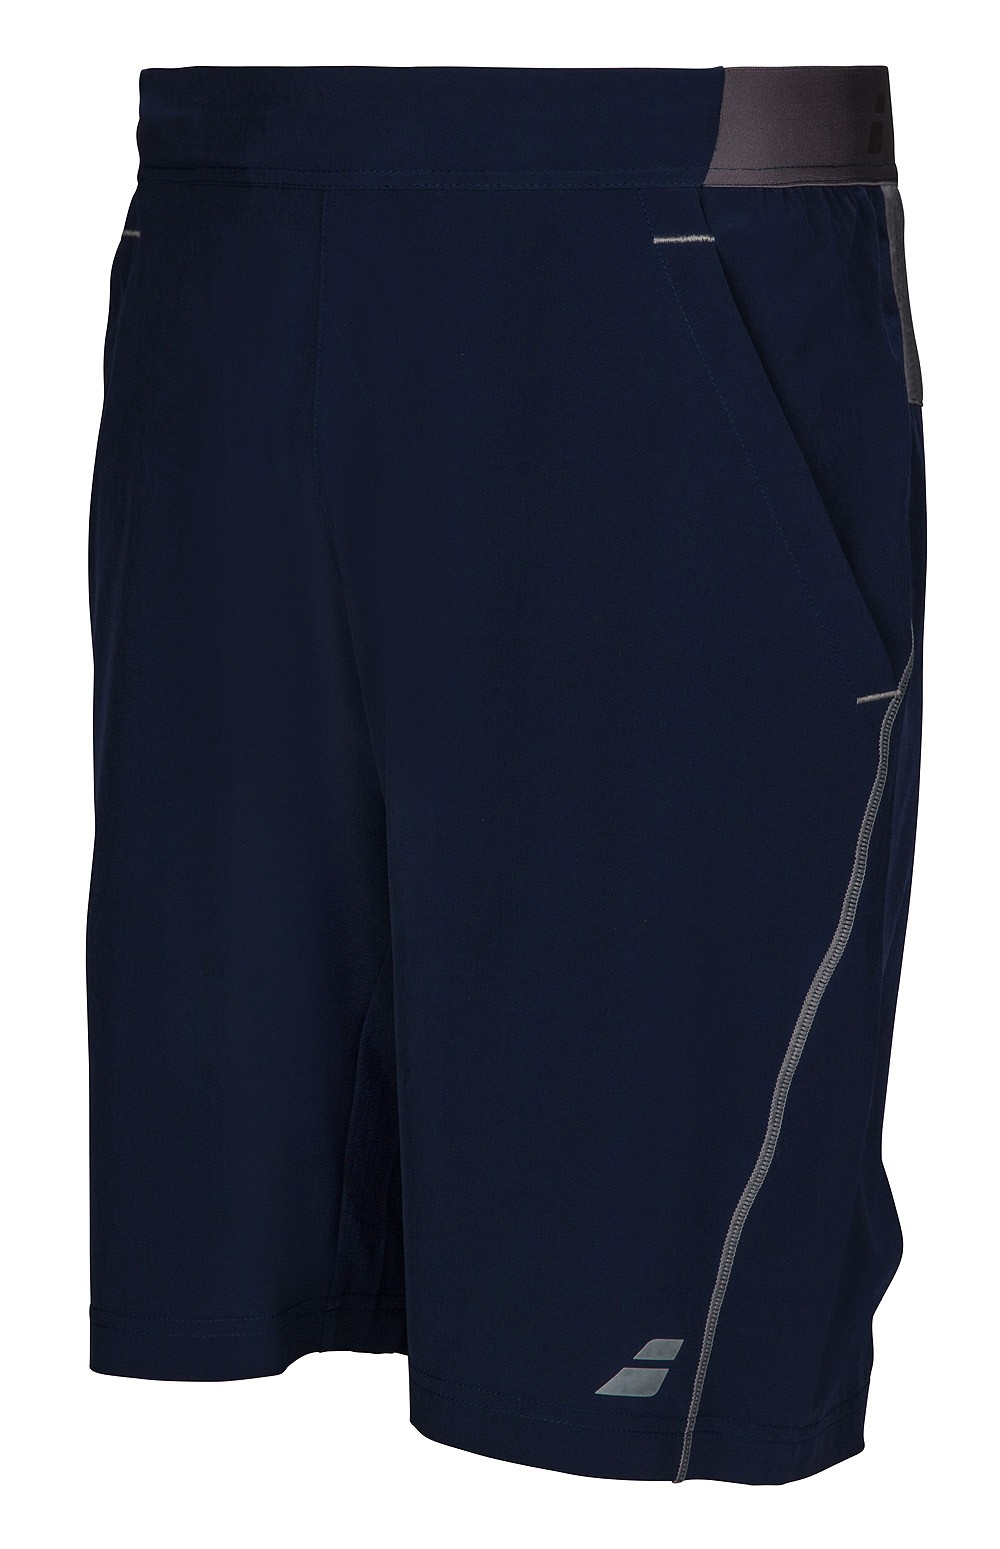 Spodenki tenisowe Babolat Performance Short XLong Dark Blue